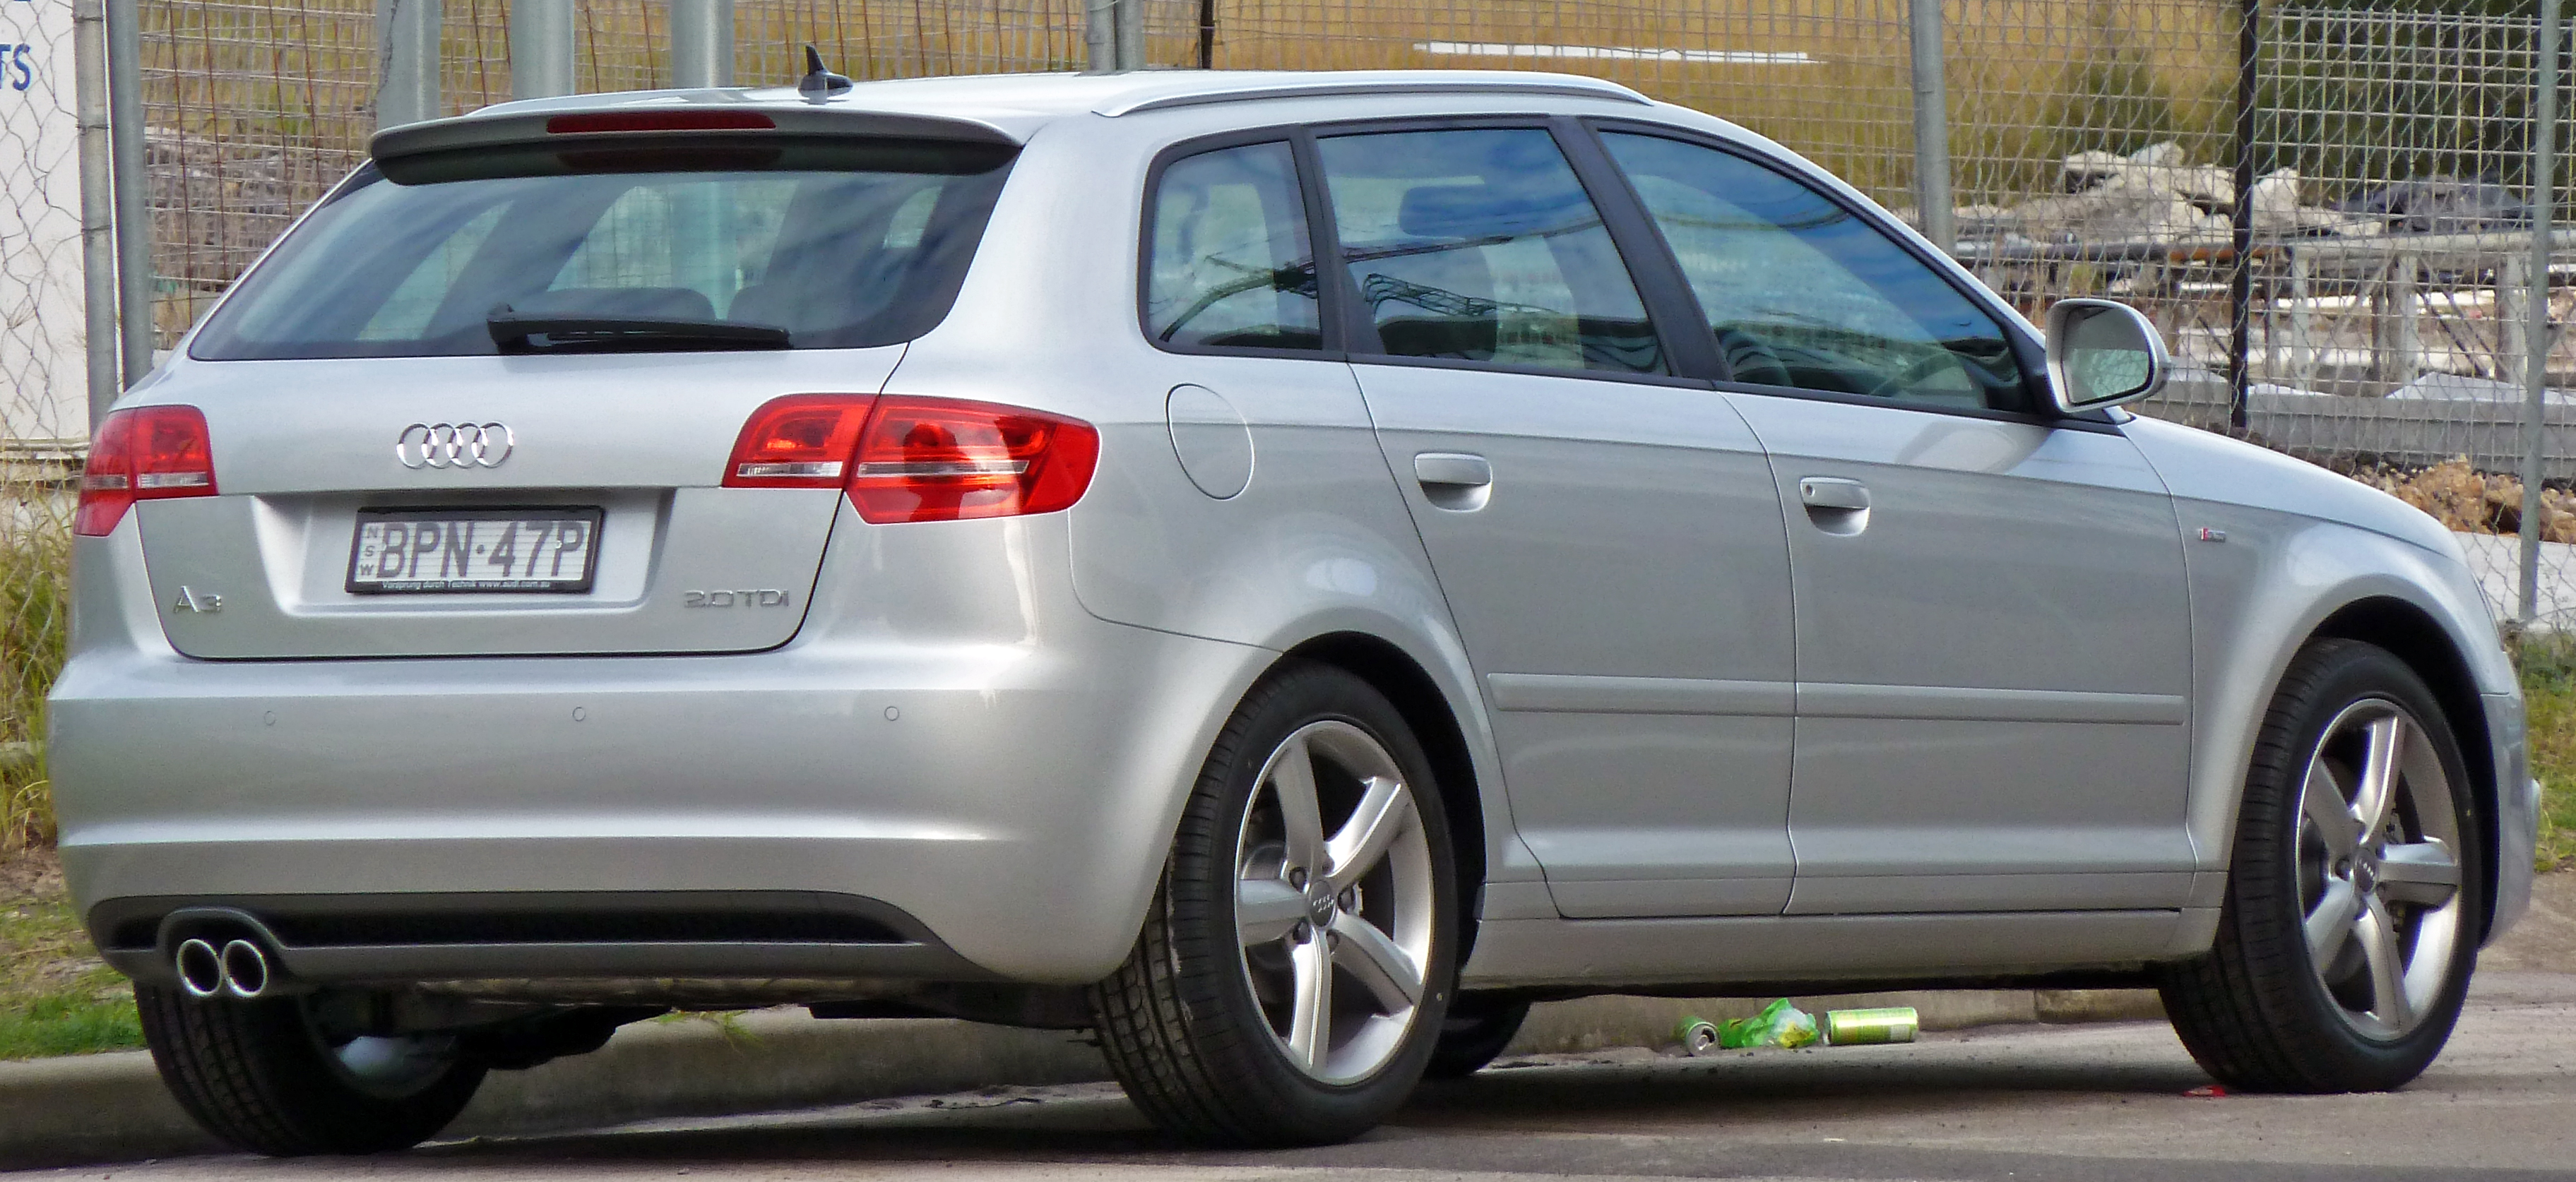 file 2008 2010 audi a3 8pa 2 0 tdi ambition 5 door sportback wikipedia. Black Bedroom Furniture Sets. Home Design Ideas